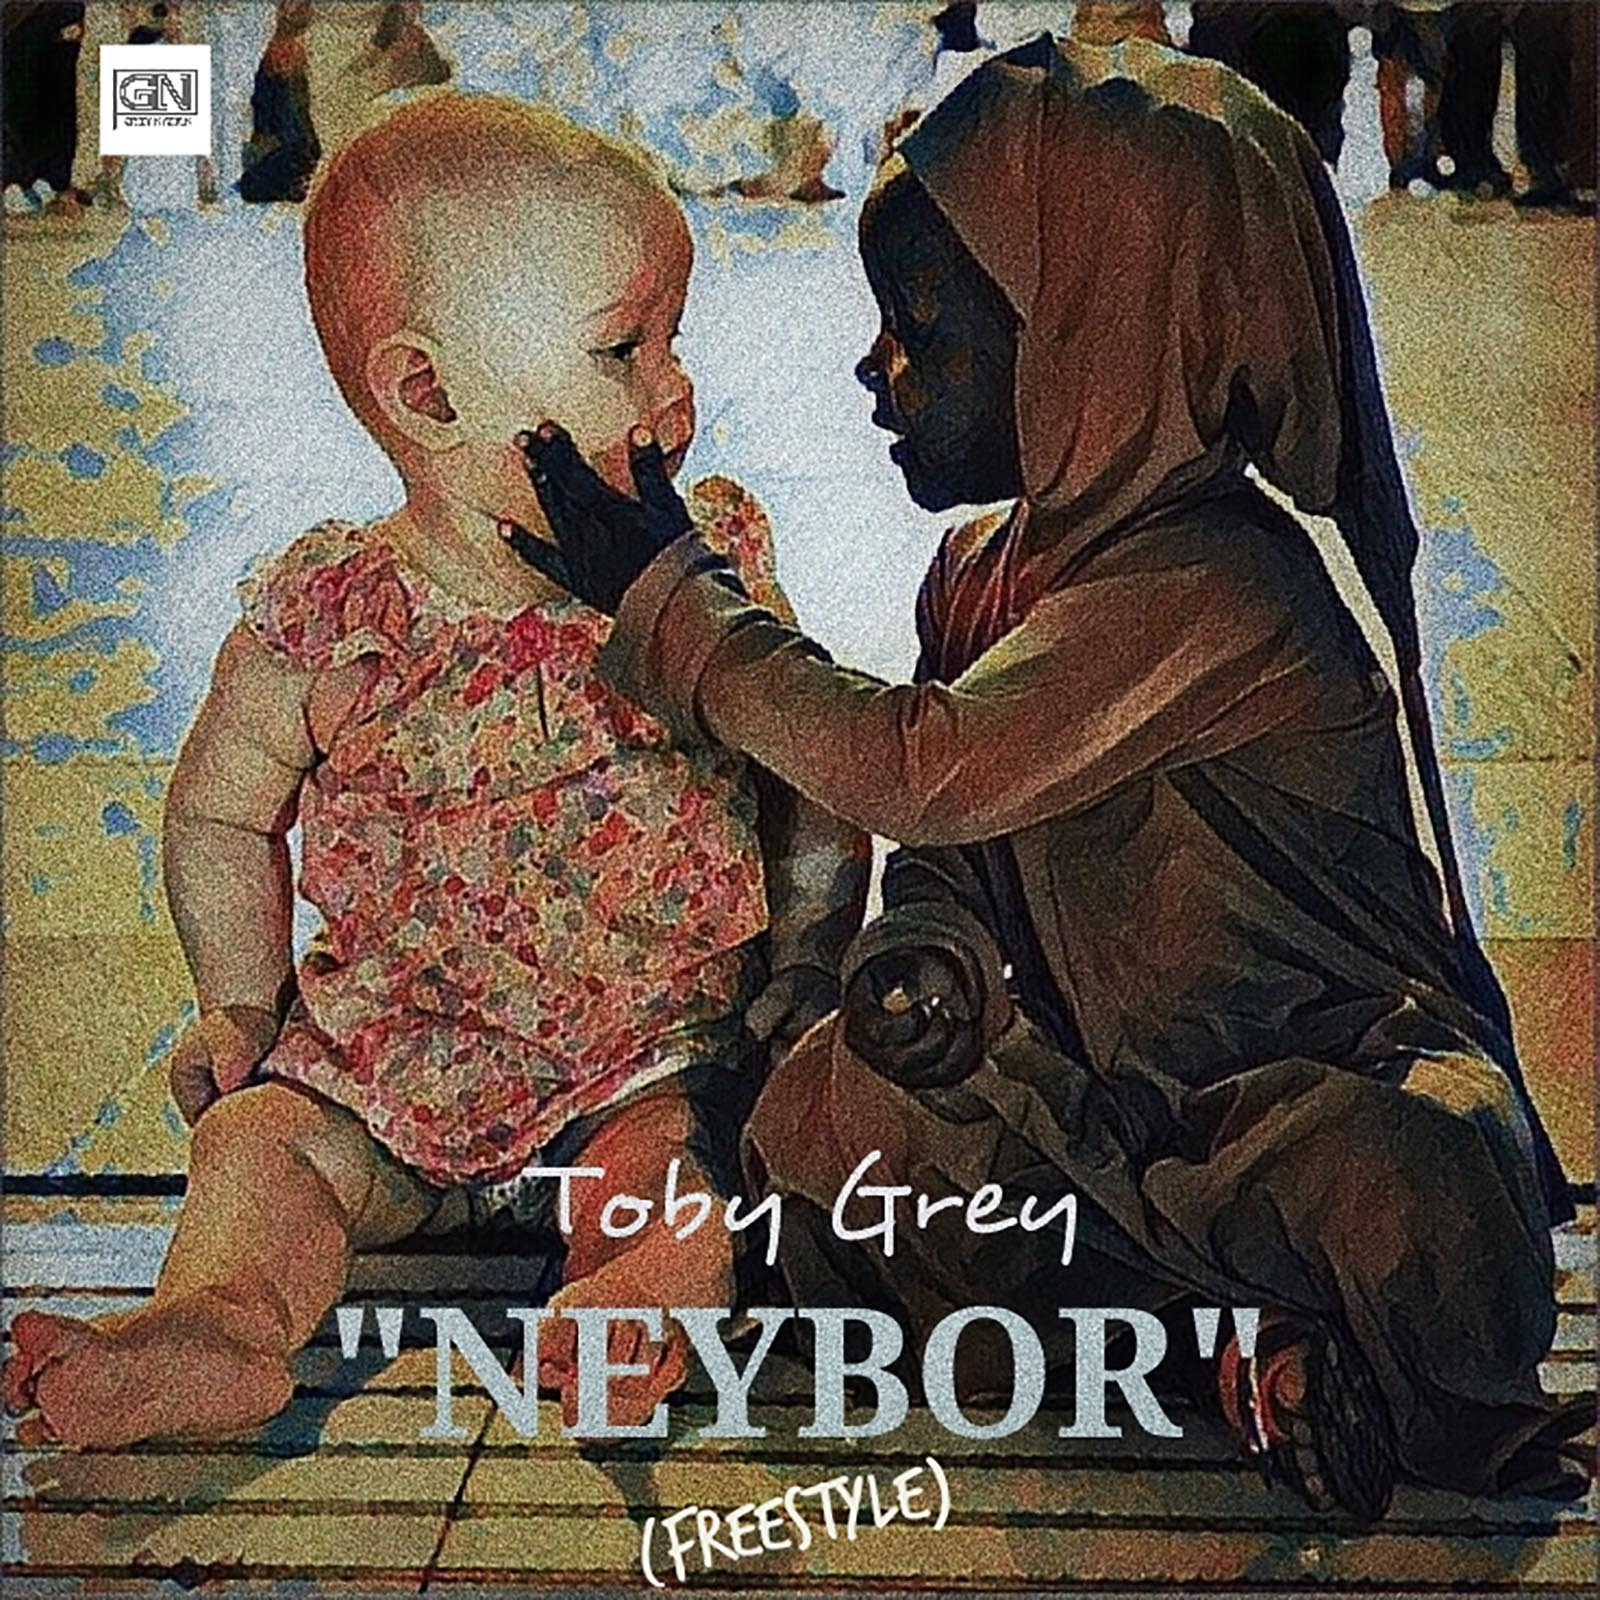 Download Toby Grey's Freestyle Song 'Neybor' (MP3)